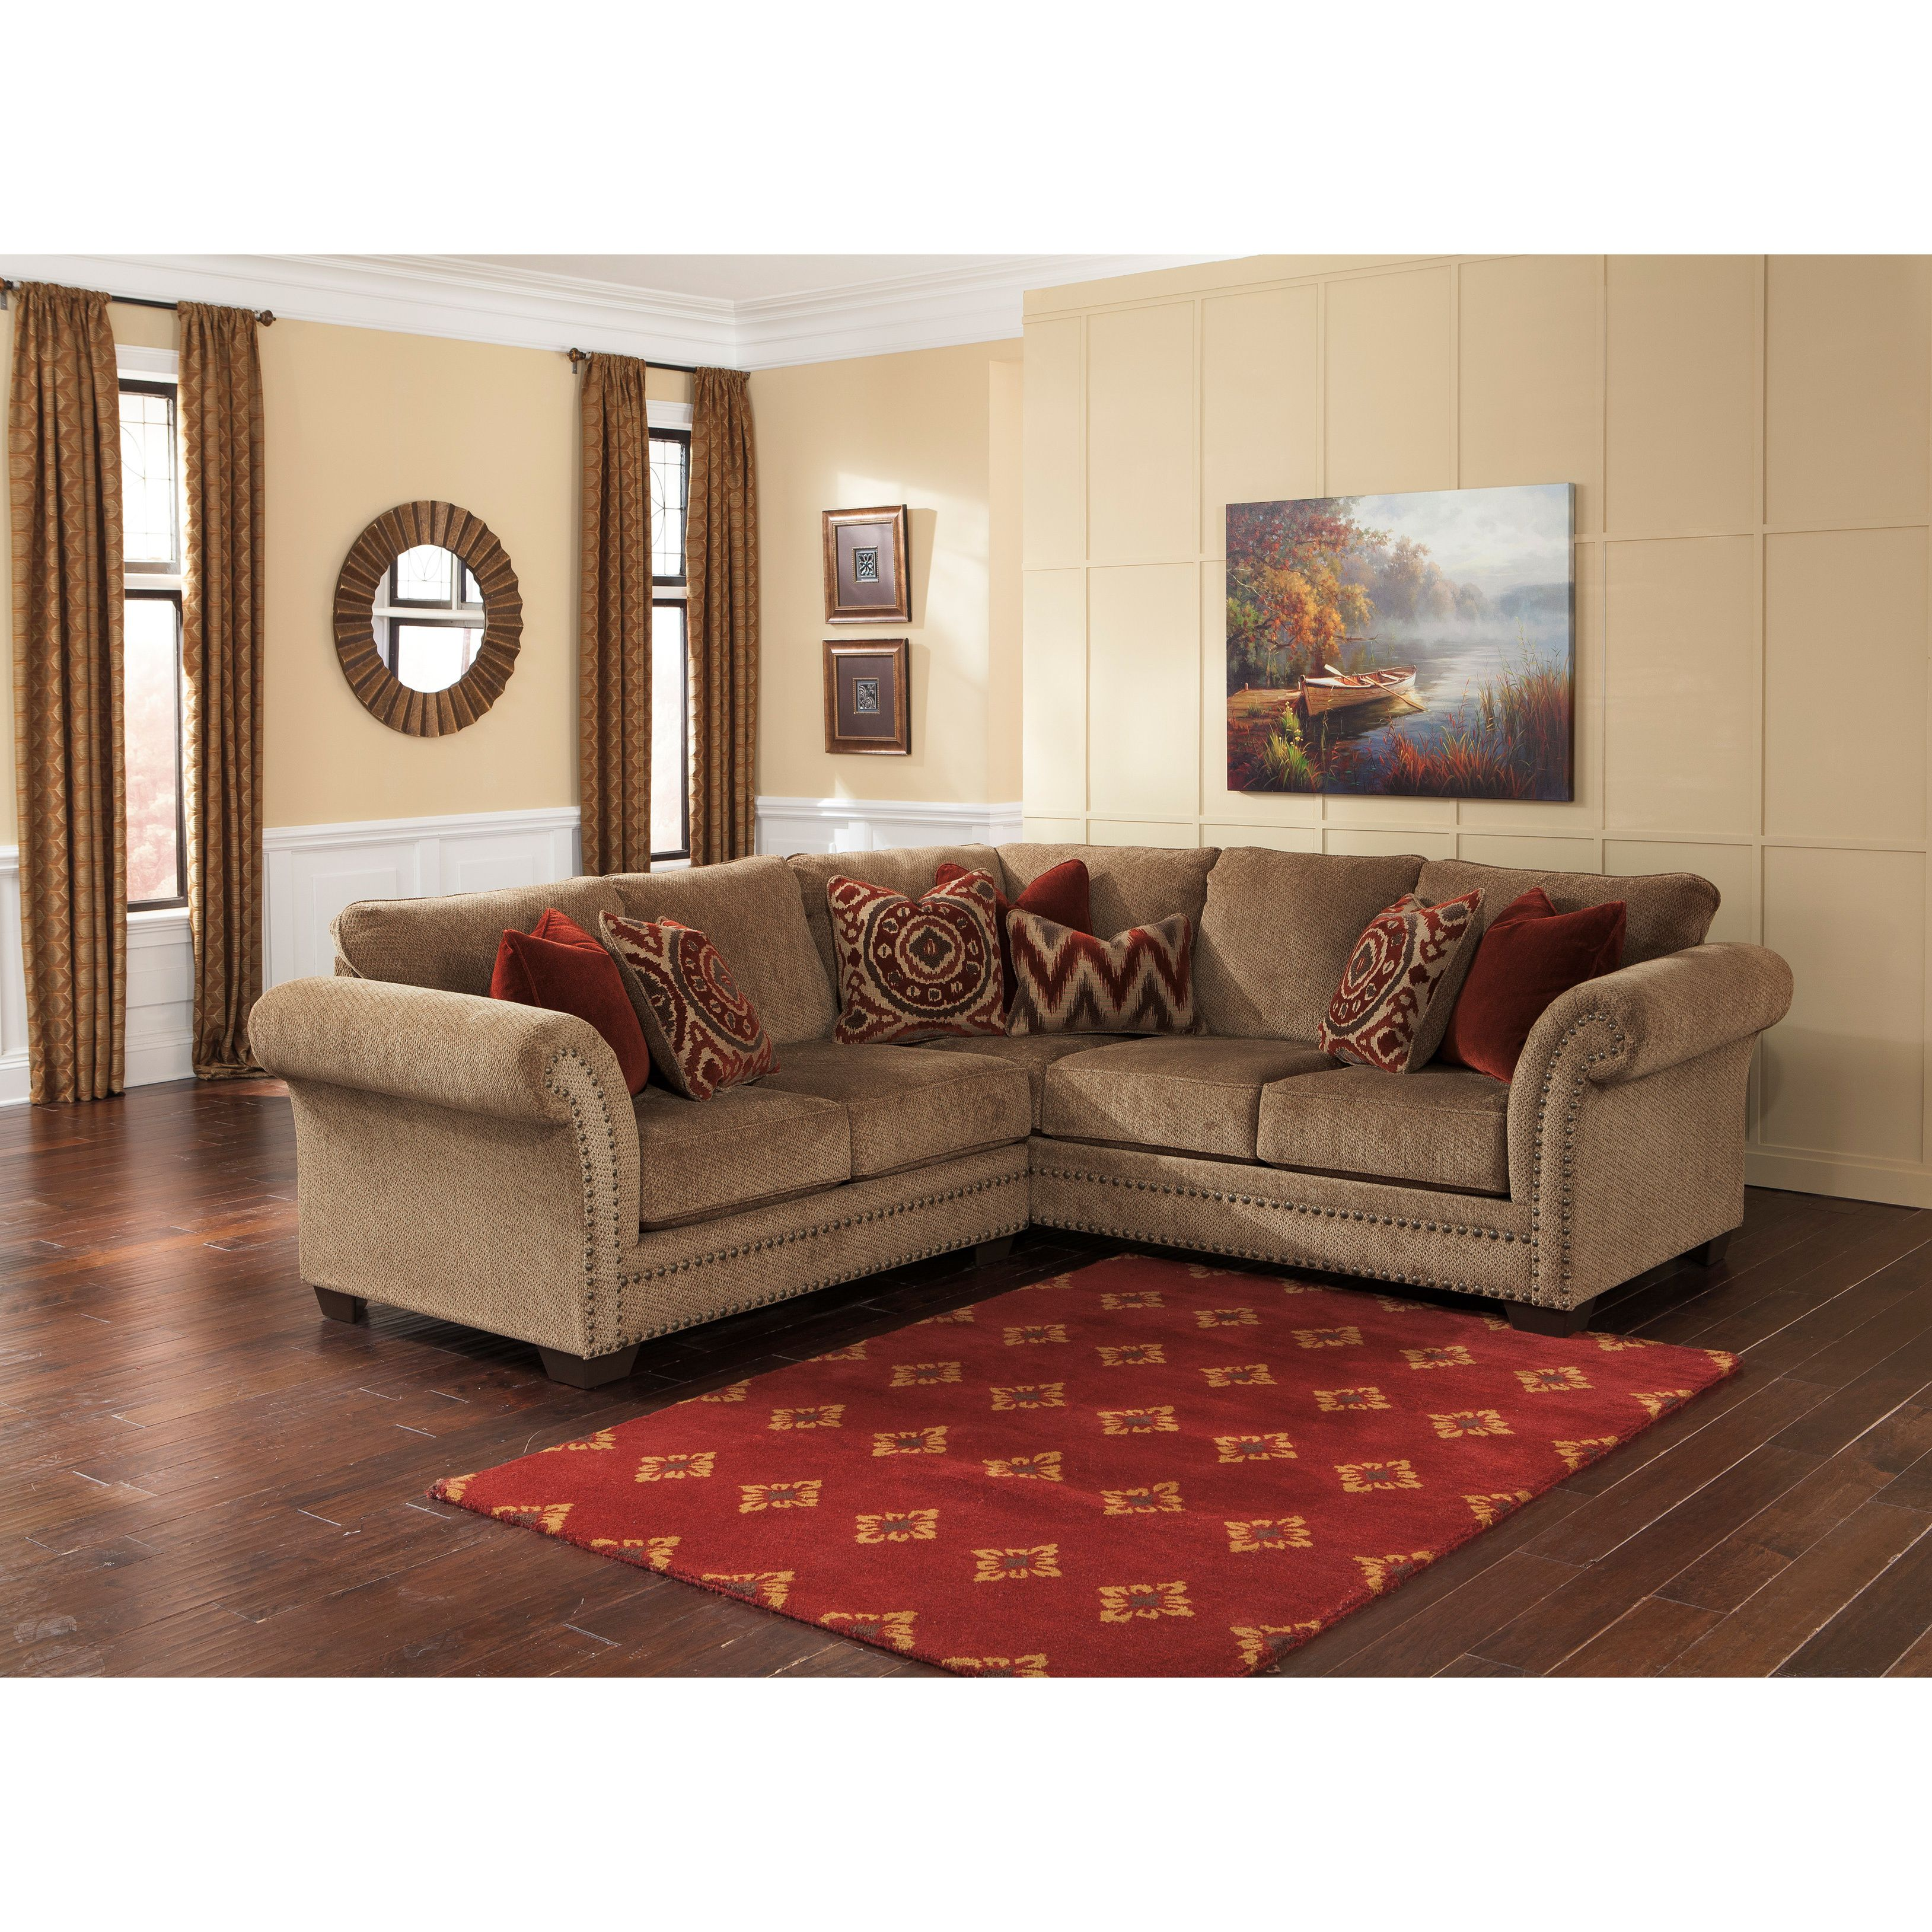 Classic Design Meets Modern Comfort With The Grecian Sofa Sectional